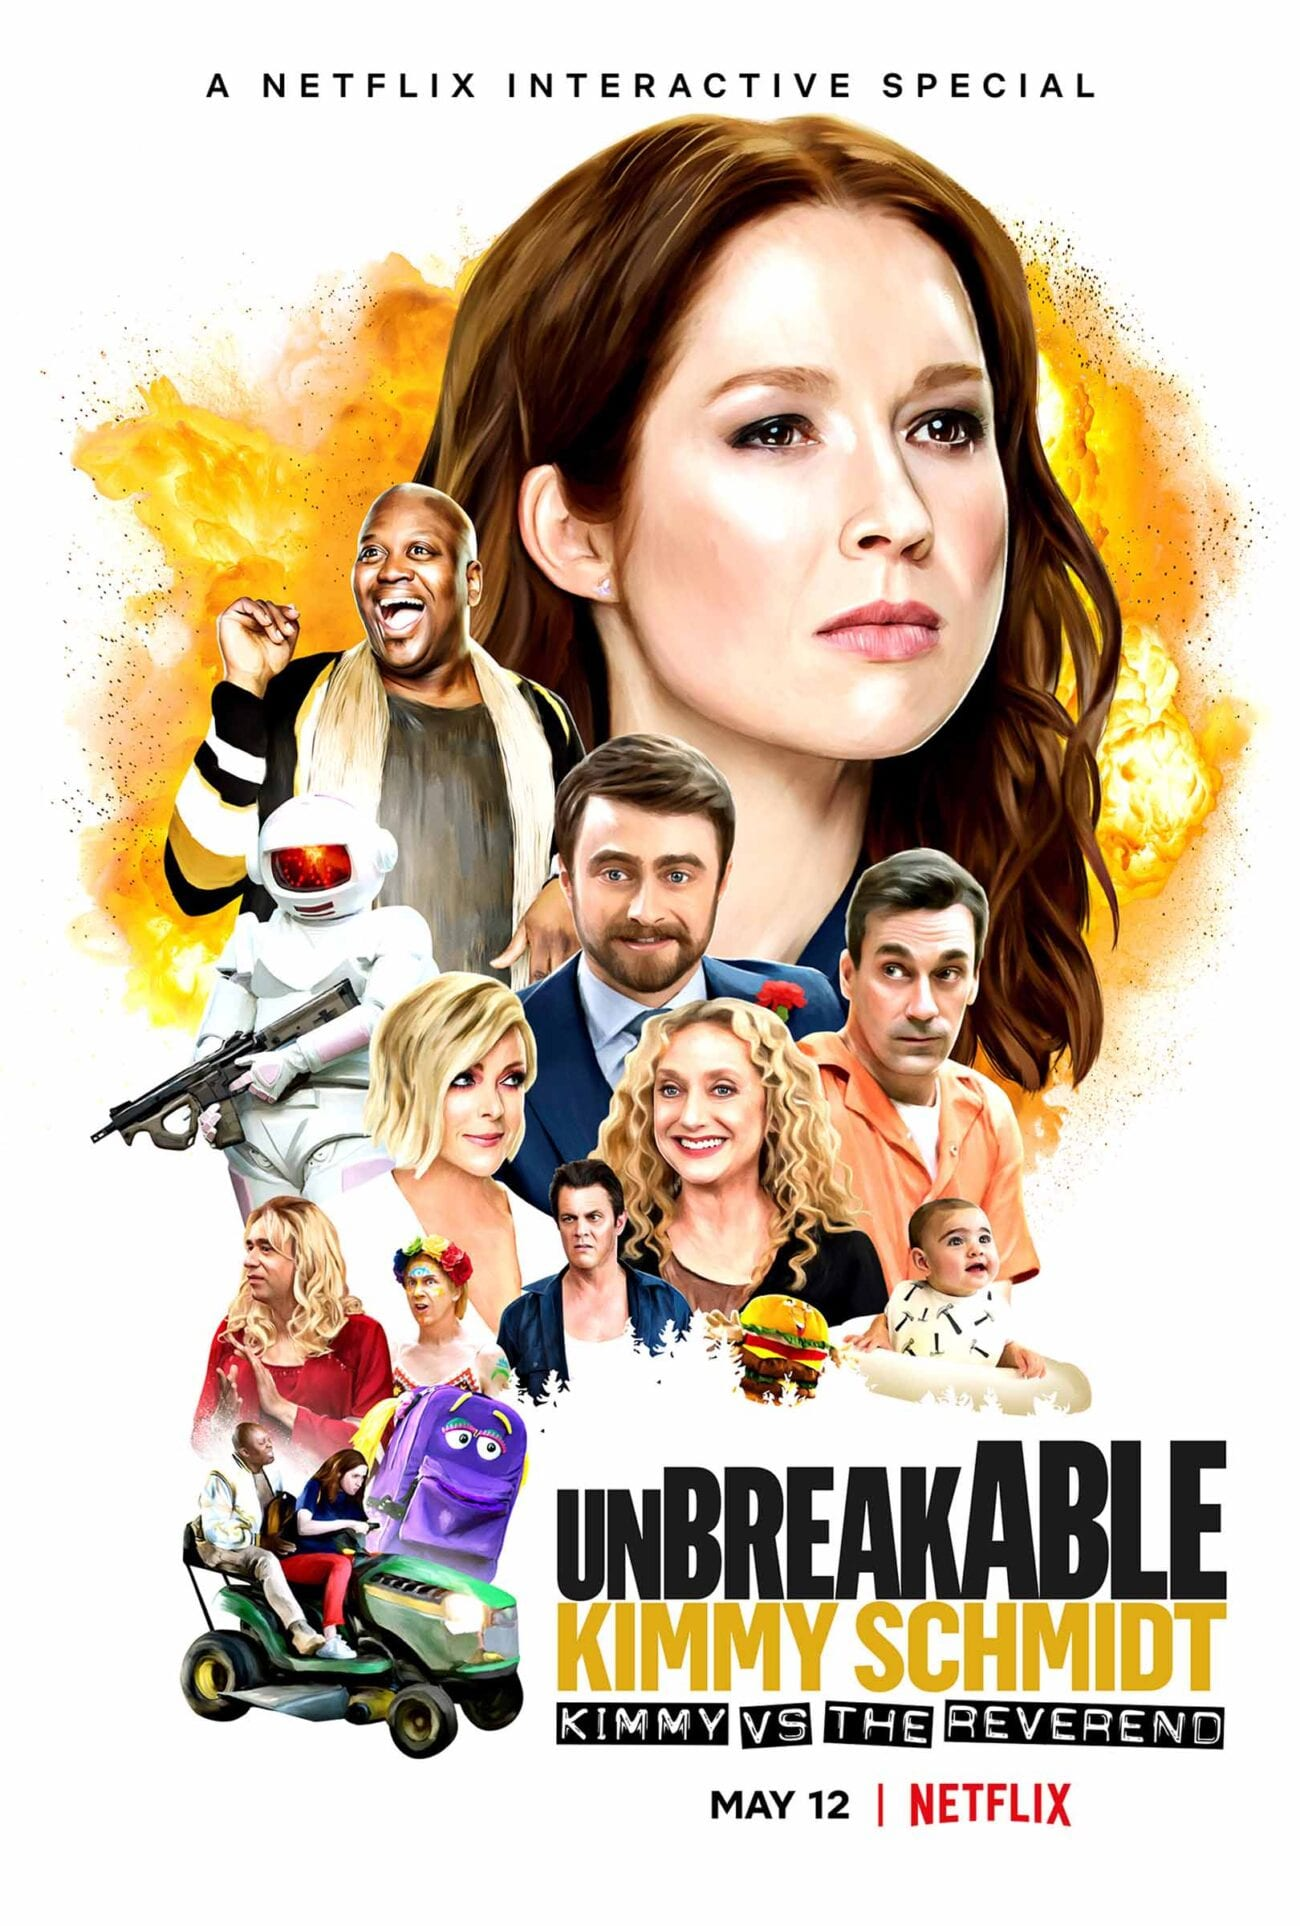 'Unbreakable Kimmy Schmidt: Kimmy Vs. the Reverend' is a fun, interactive movie filled with crazy humor, easter eggs, and famous faces.